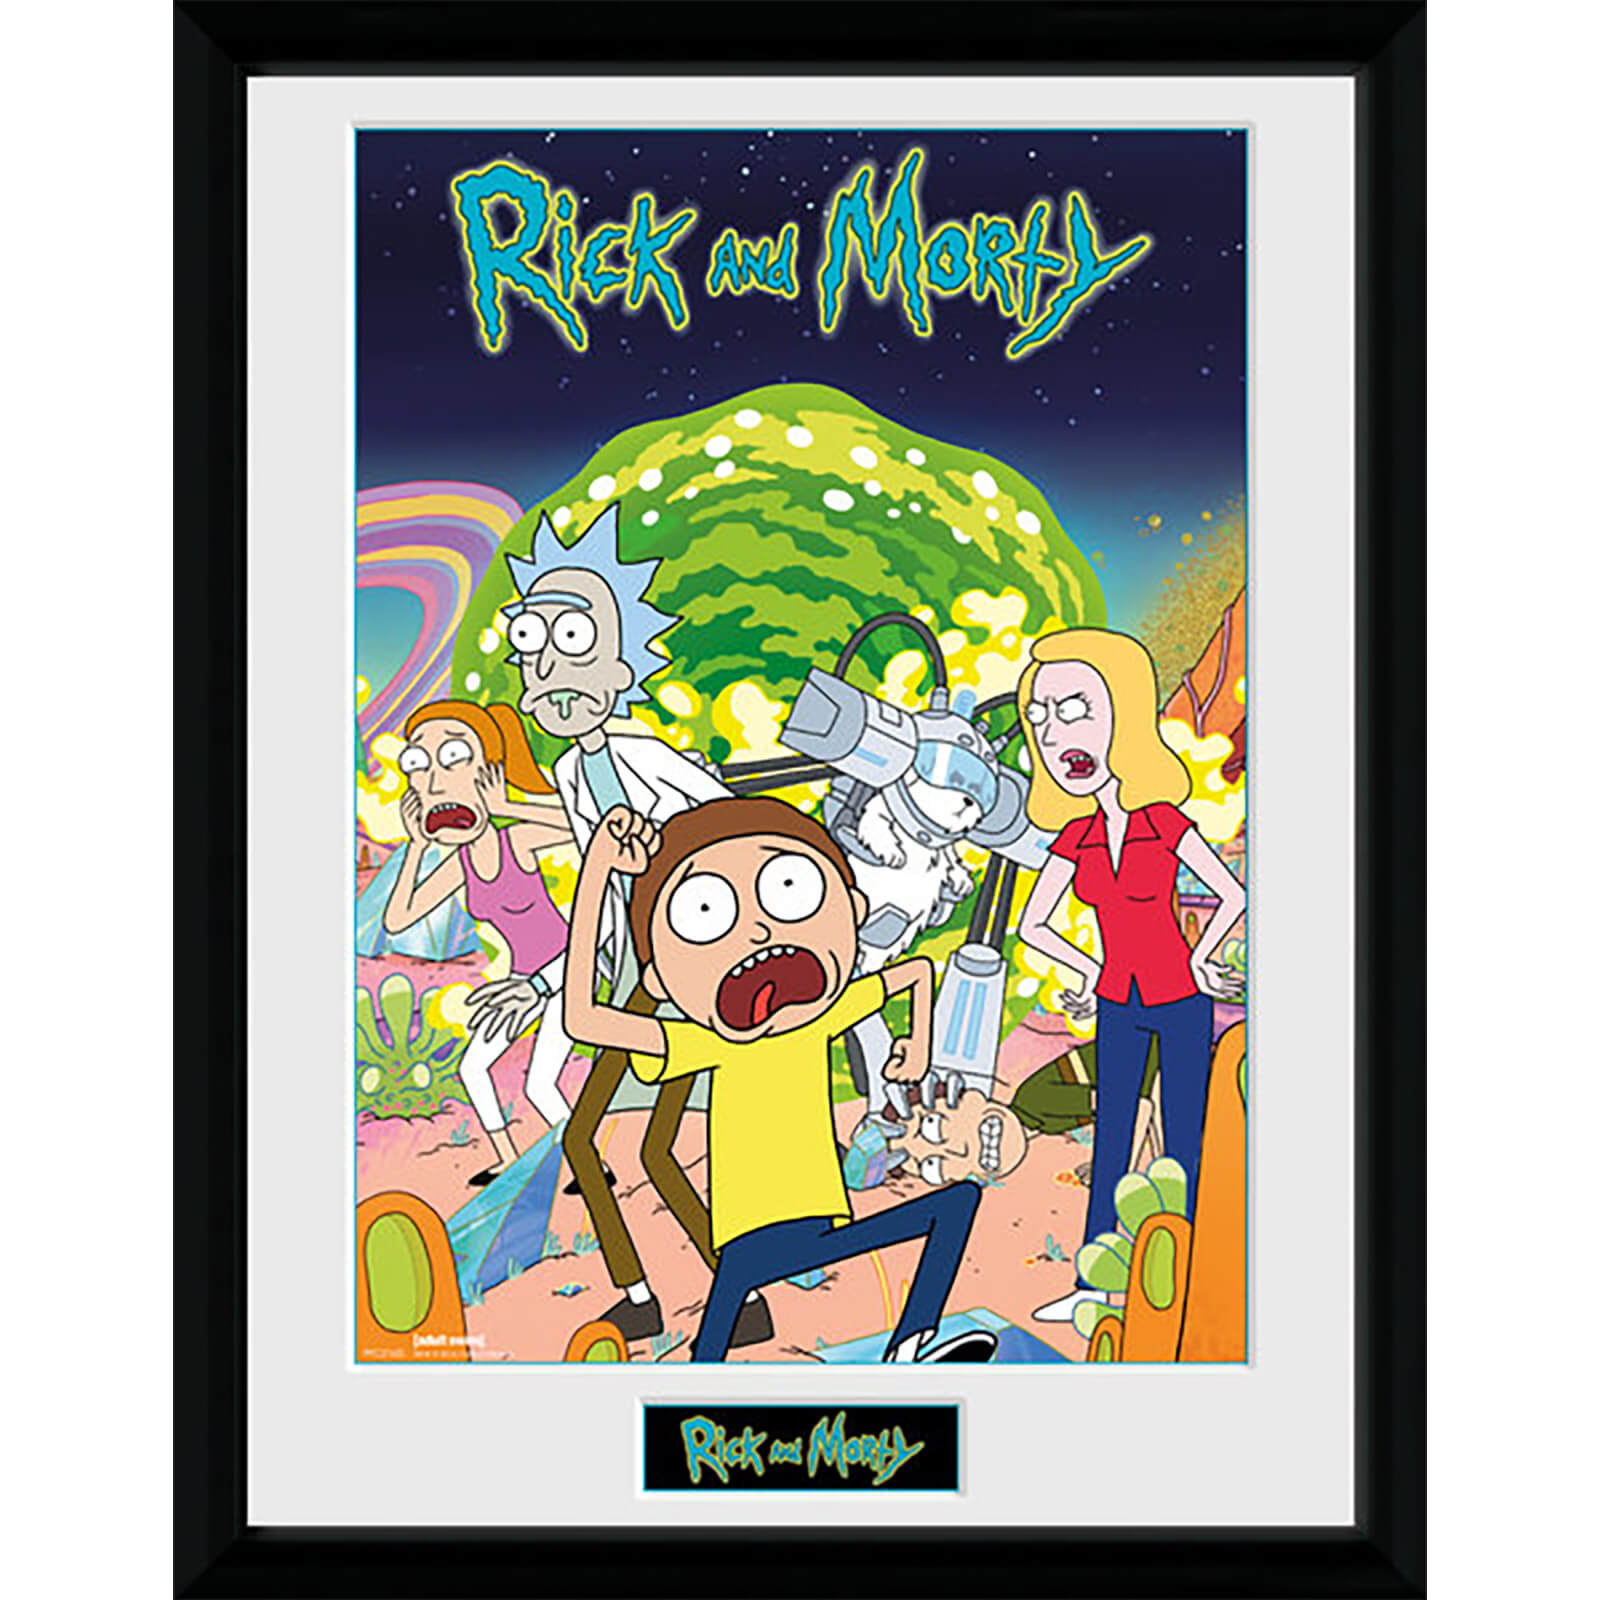 Rick and Morty Compilation - 16 x 12 Inches Framed Photograph